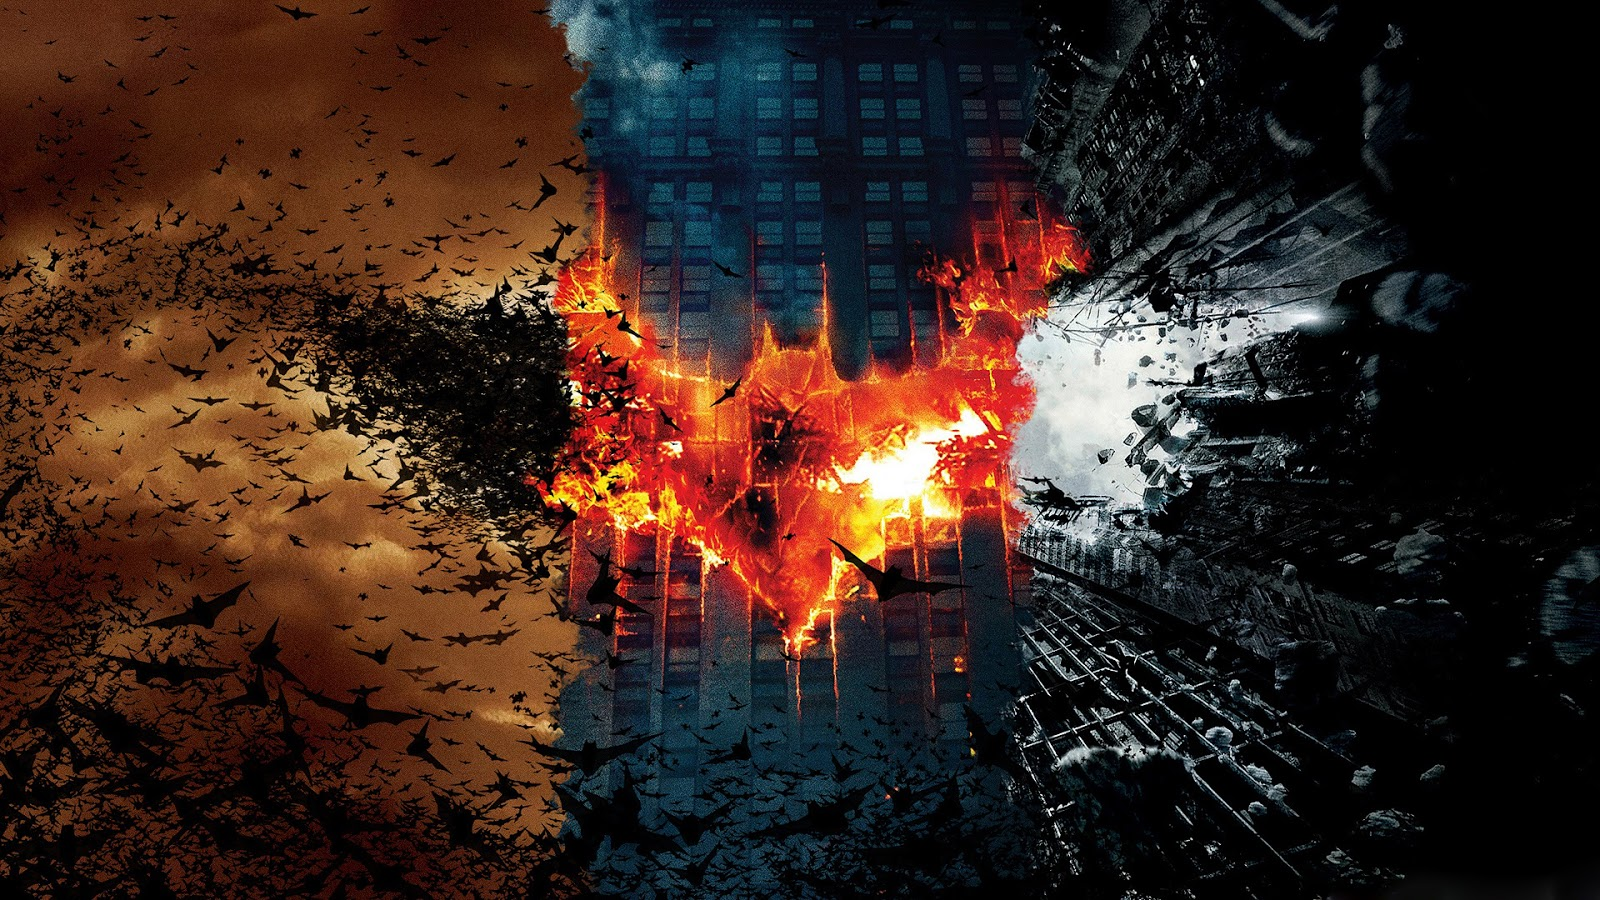 Batman Trilogy HD Wallpaper All the Latest and Exclusive HD 1600x900